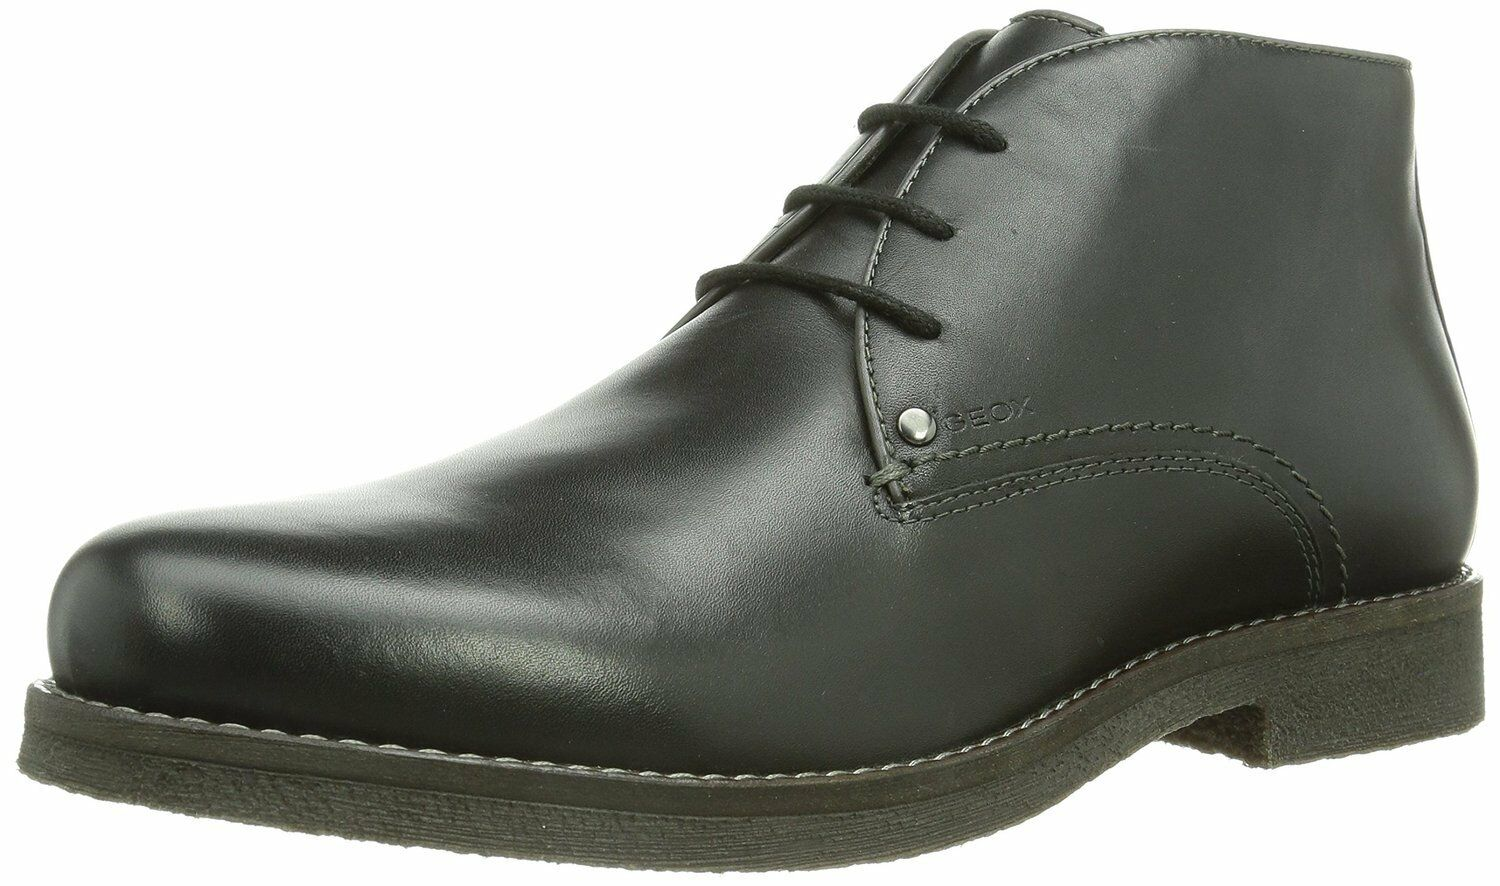 Geox Men's men Claudio Black Leather Chukka Boot